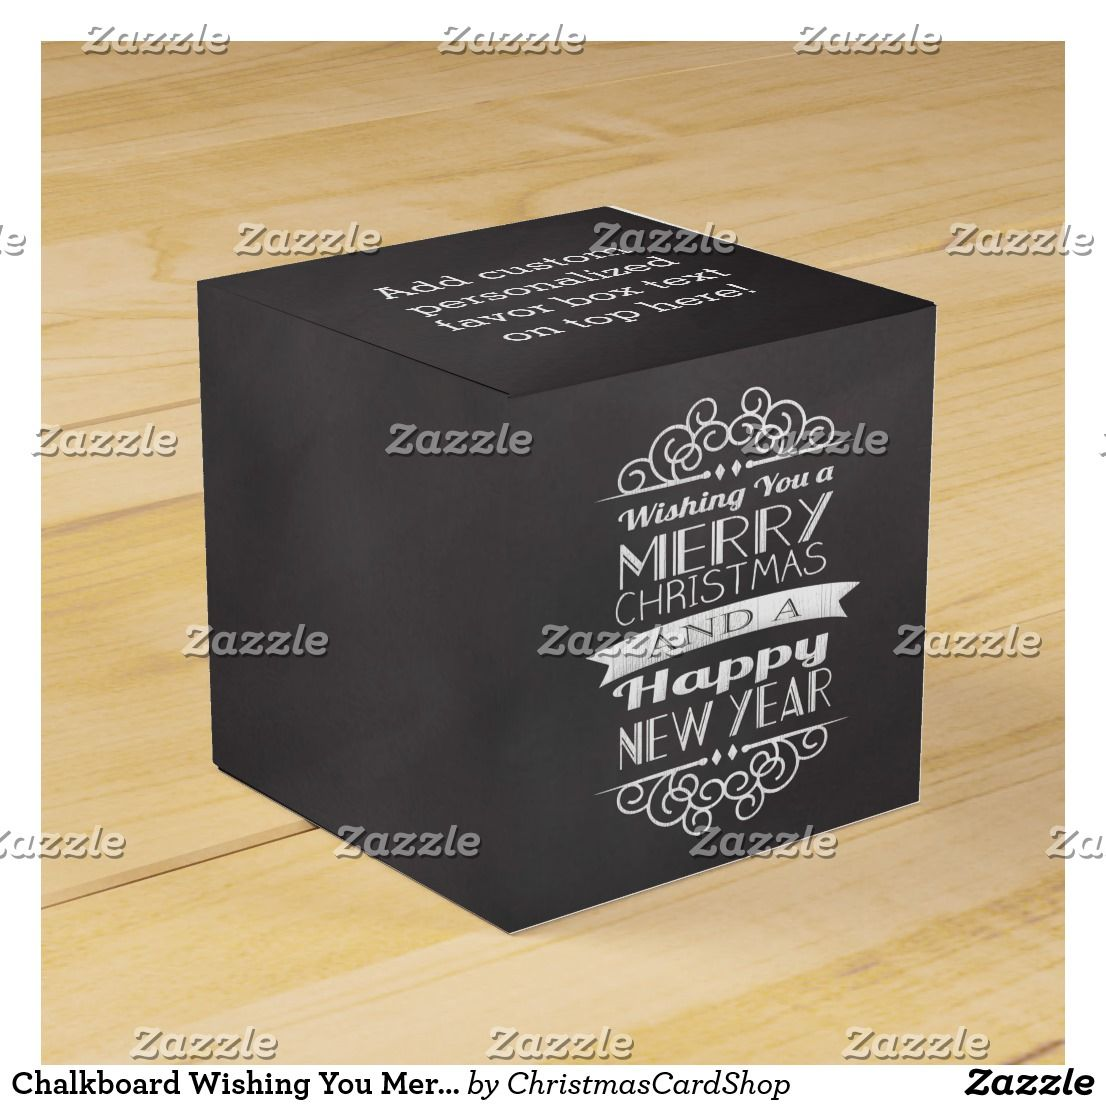 chalkboard wishing you merry christmas favor box